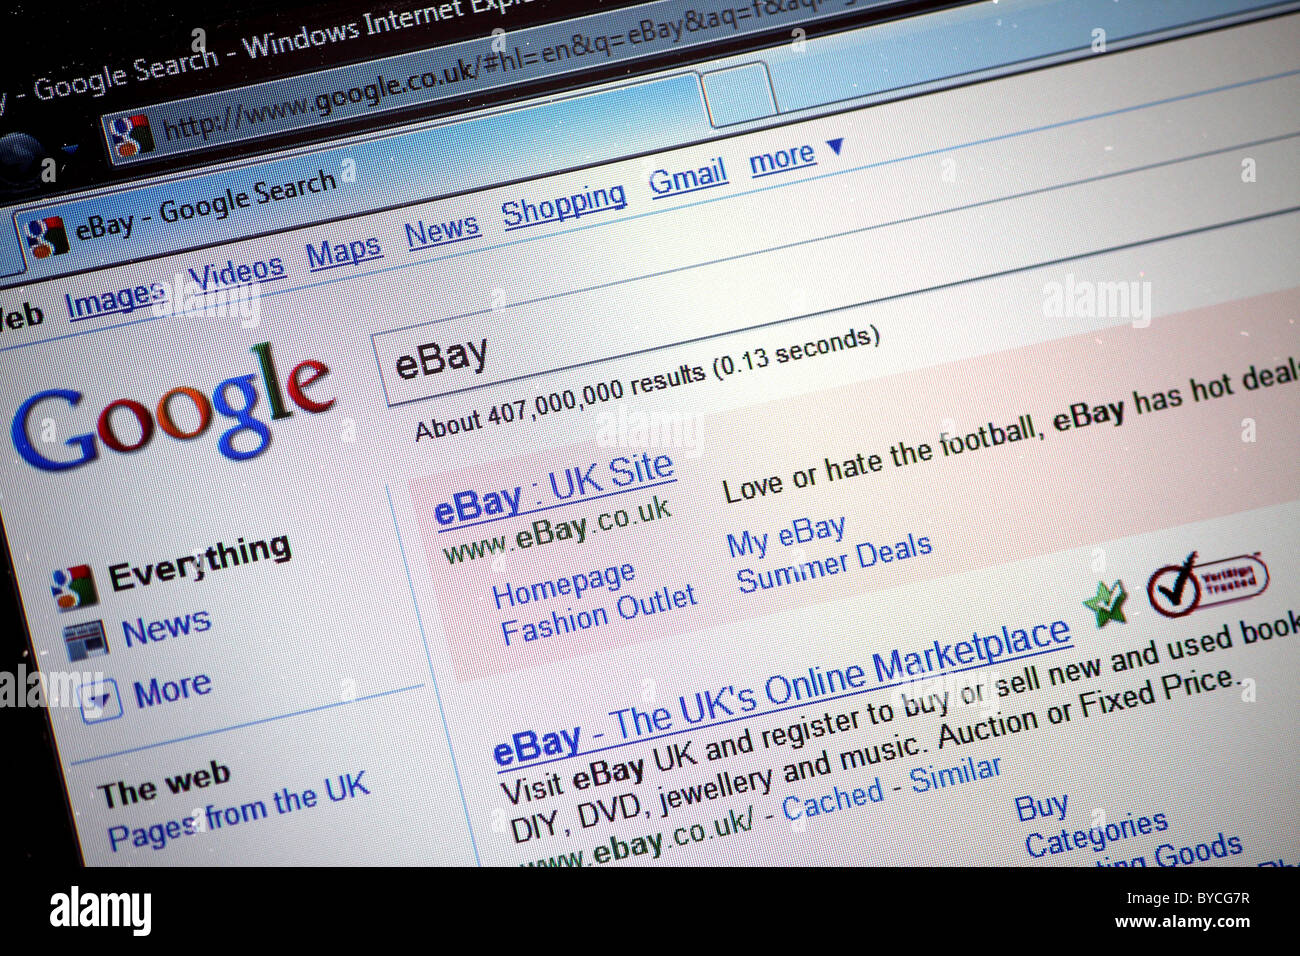 Googles Search Engine Webpage Searching For Ebay Uk On The Internet Stock Photo Alamy